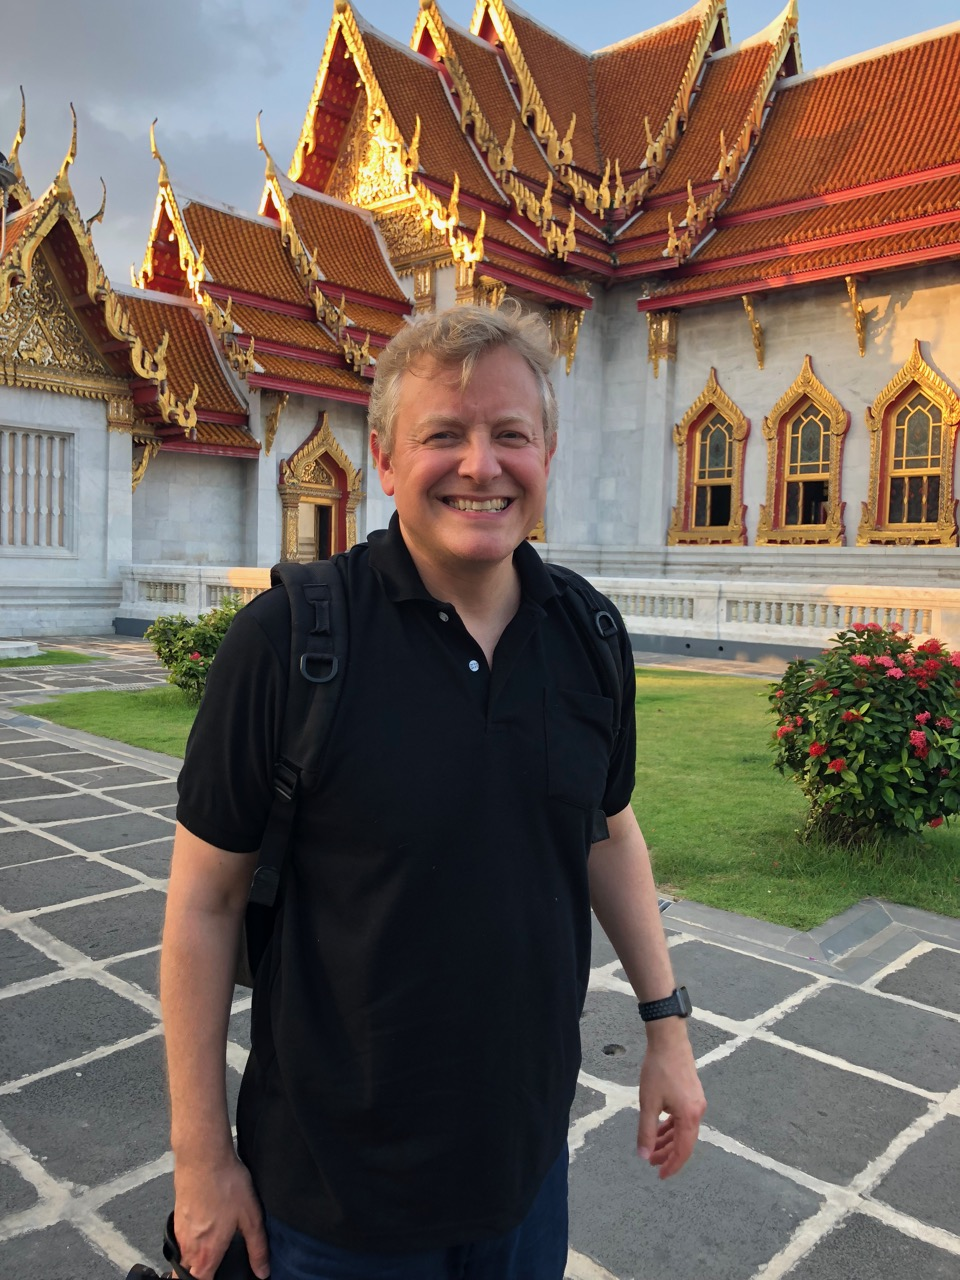 In front of the White Marble Temple, wearing black in honor of the King's cremation ceremony (which happened on the 26th)